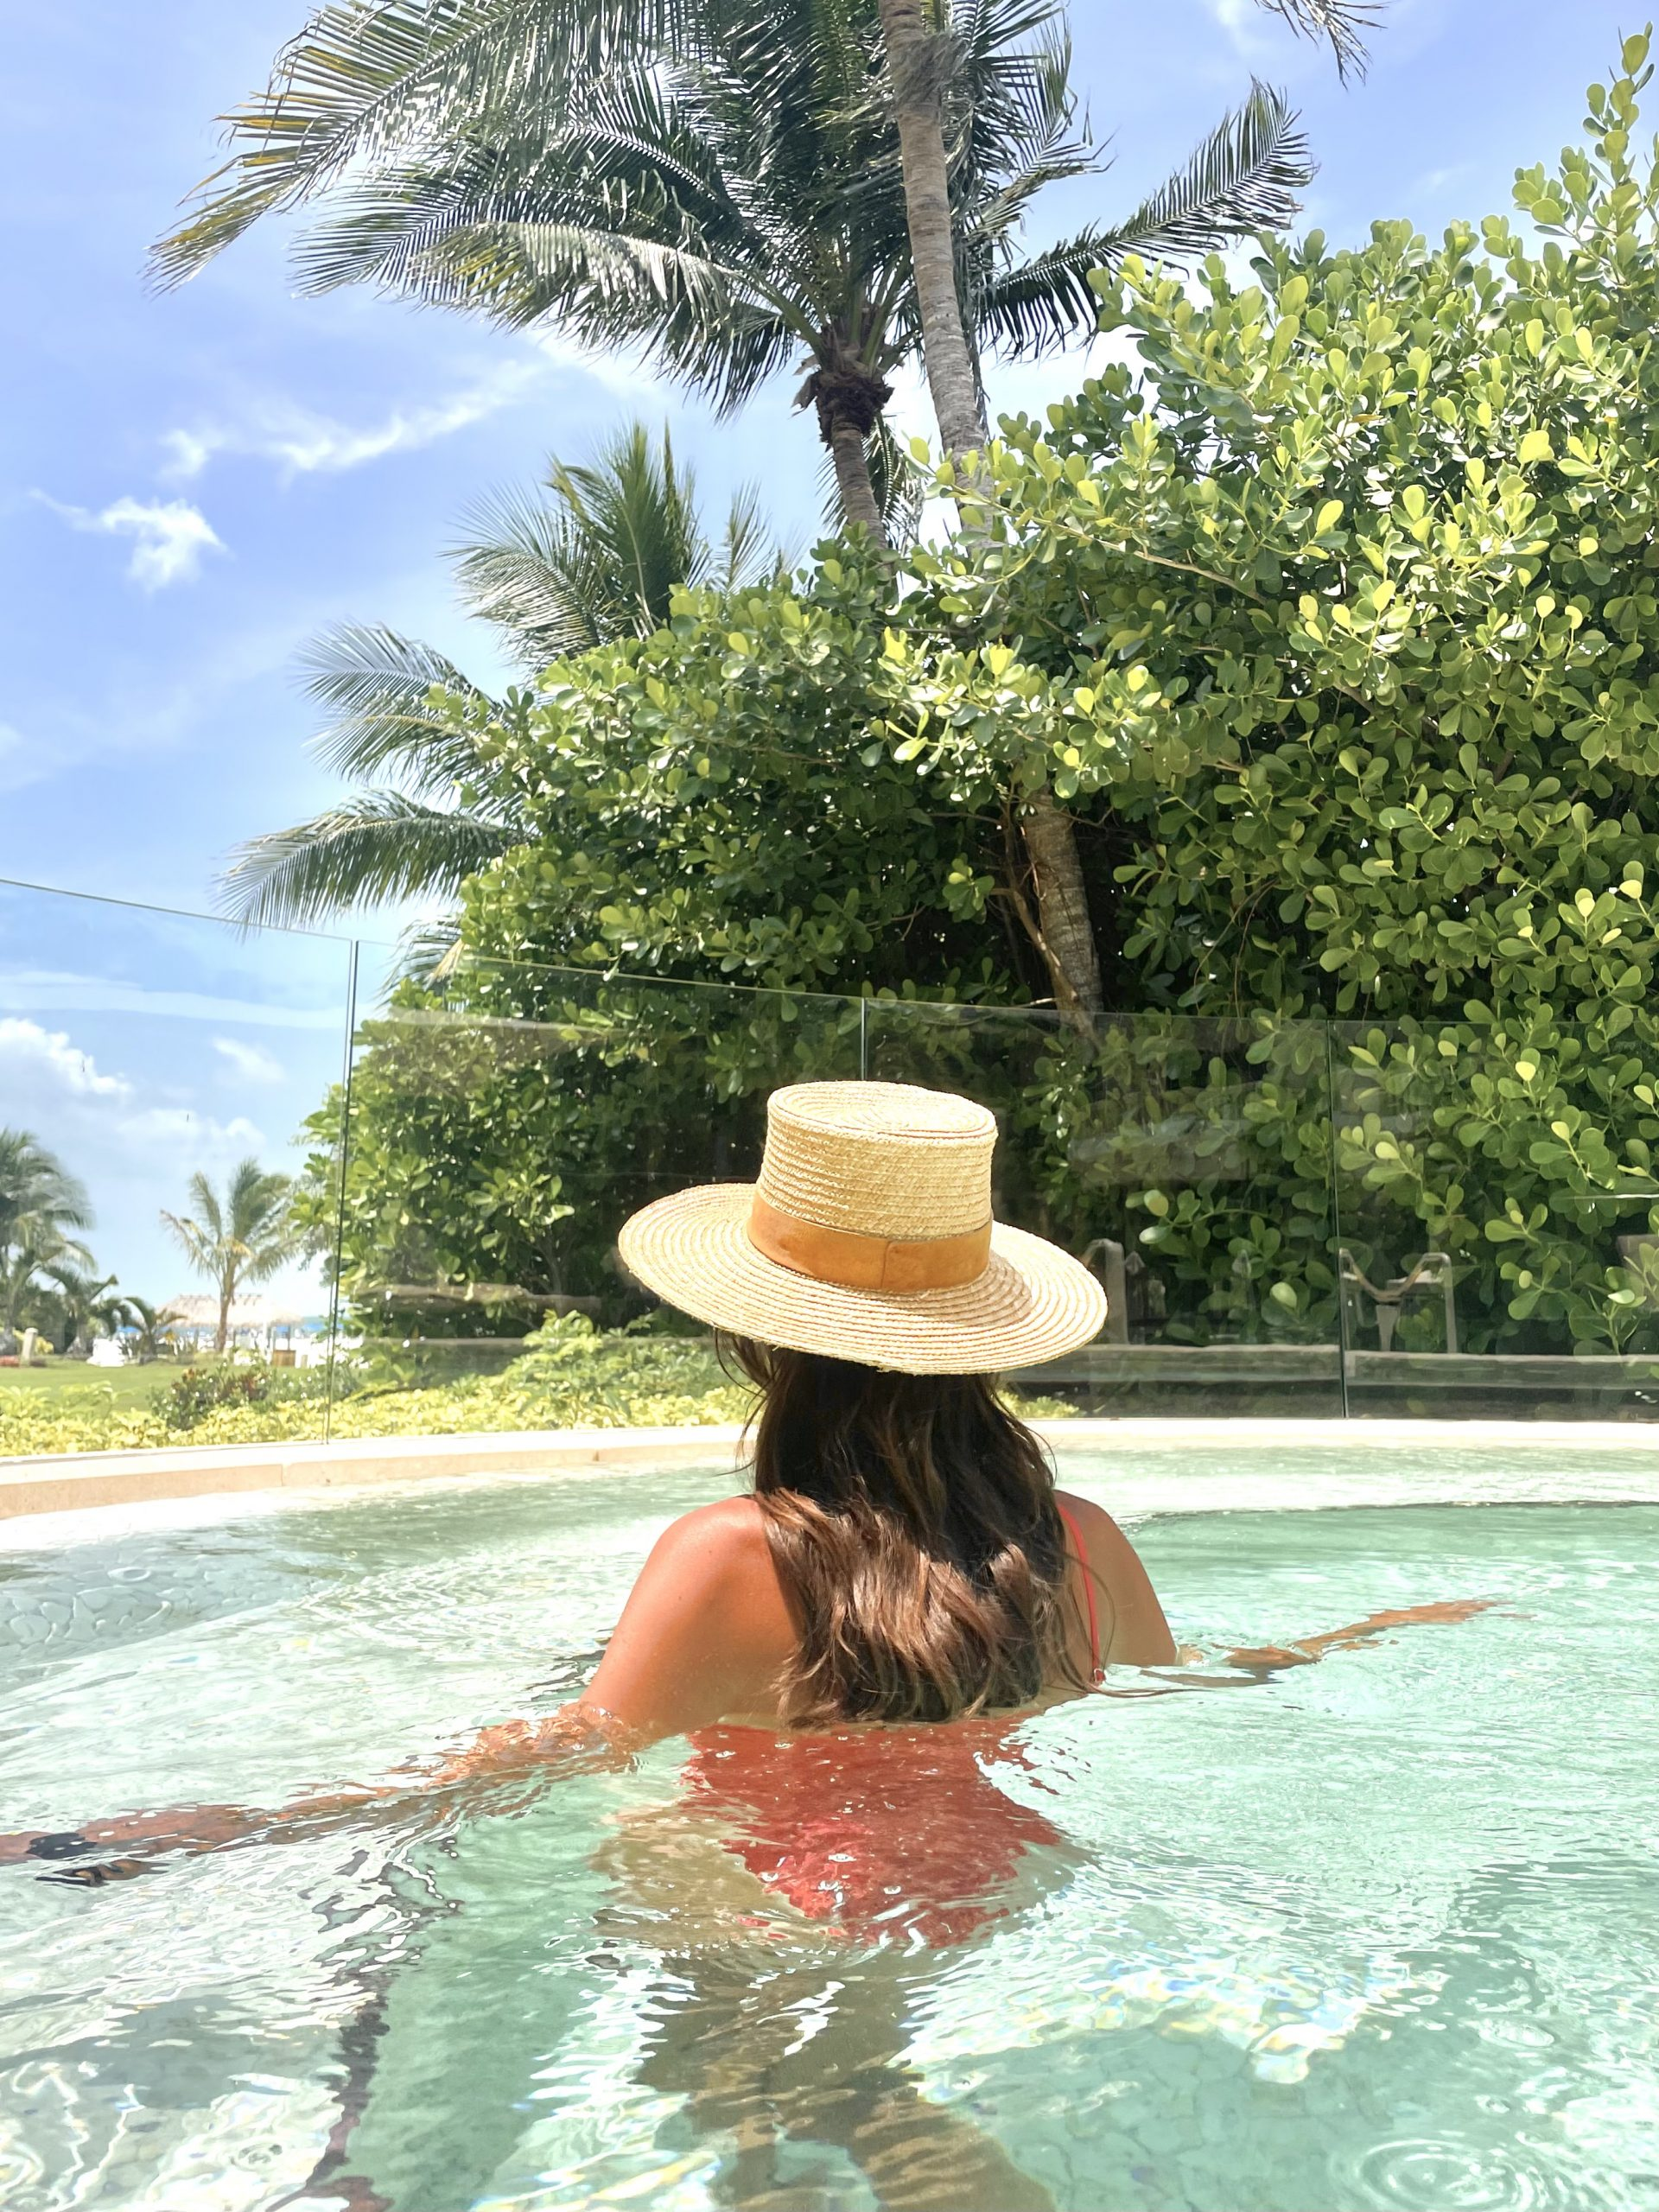 A First Timer's Guide To The Spa by JW®